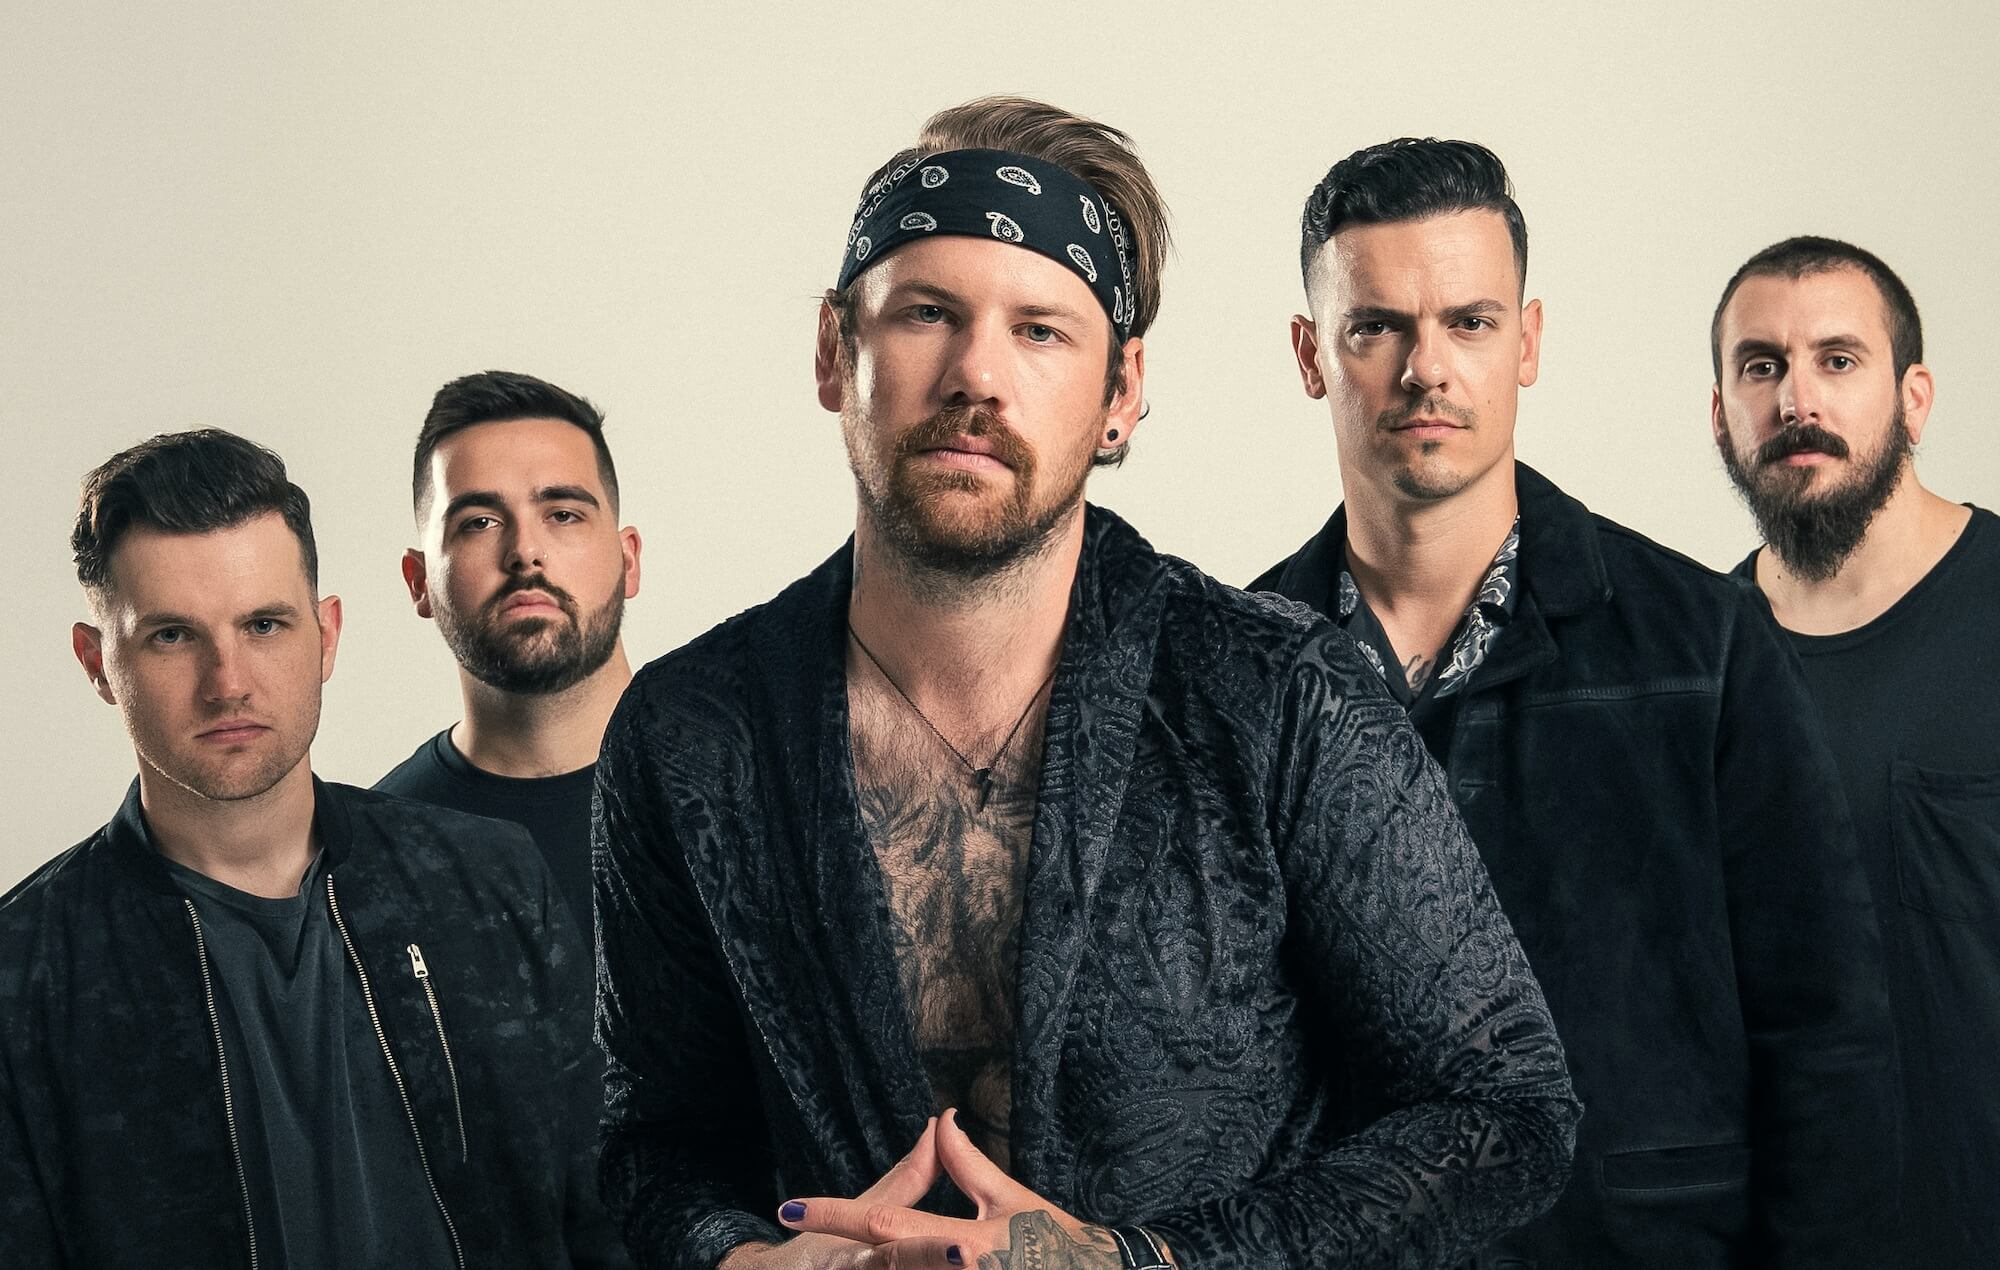 BEARTOOTH RELEASE THEIR NEW SINGLE 'FED UP'